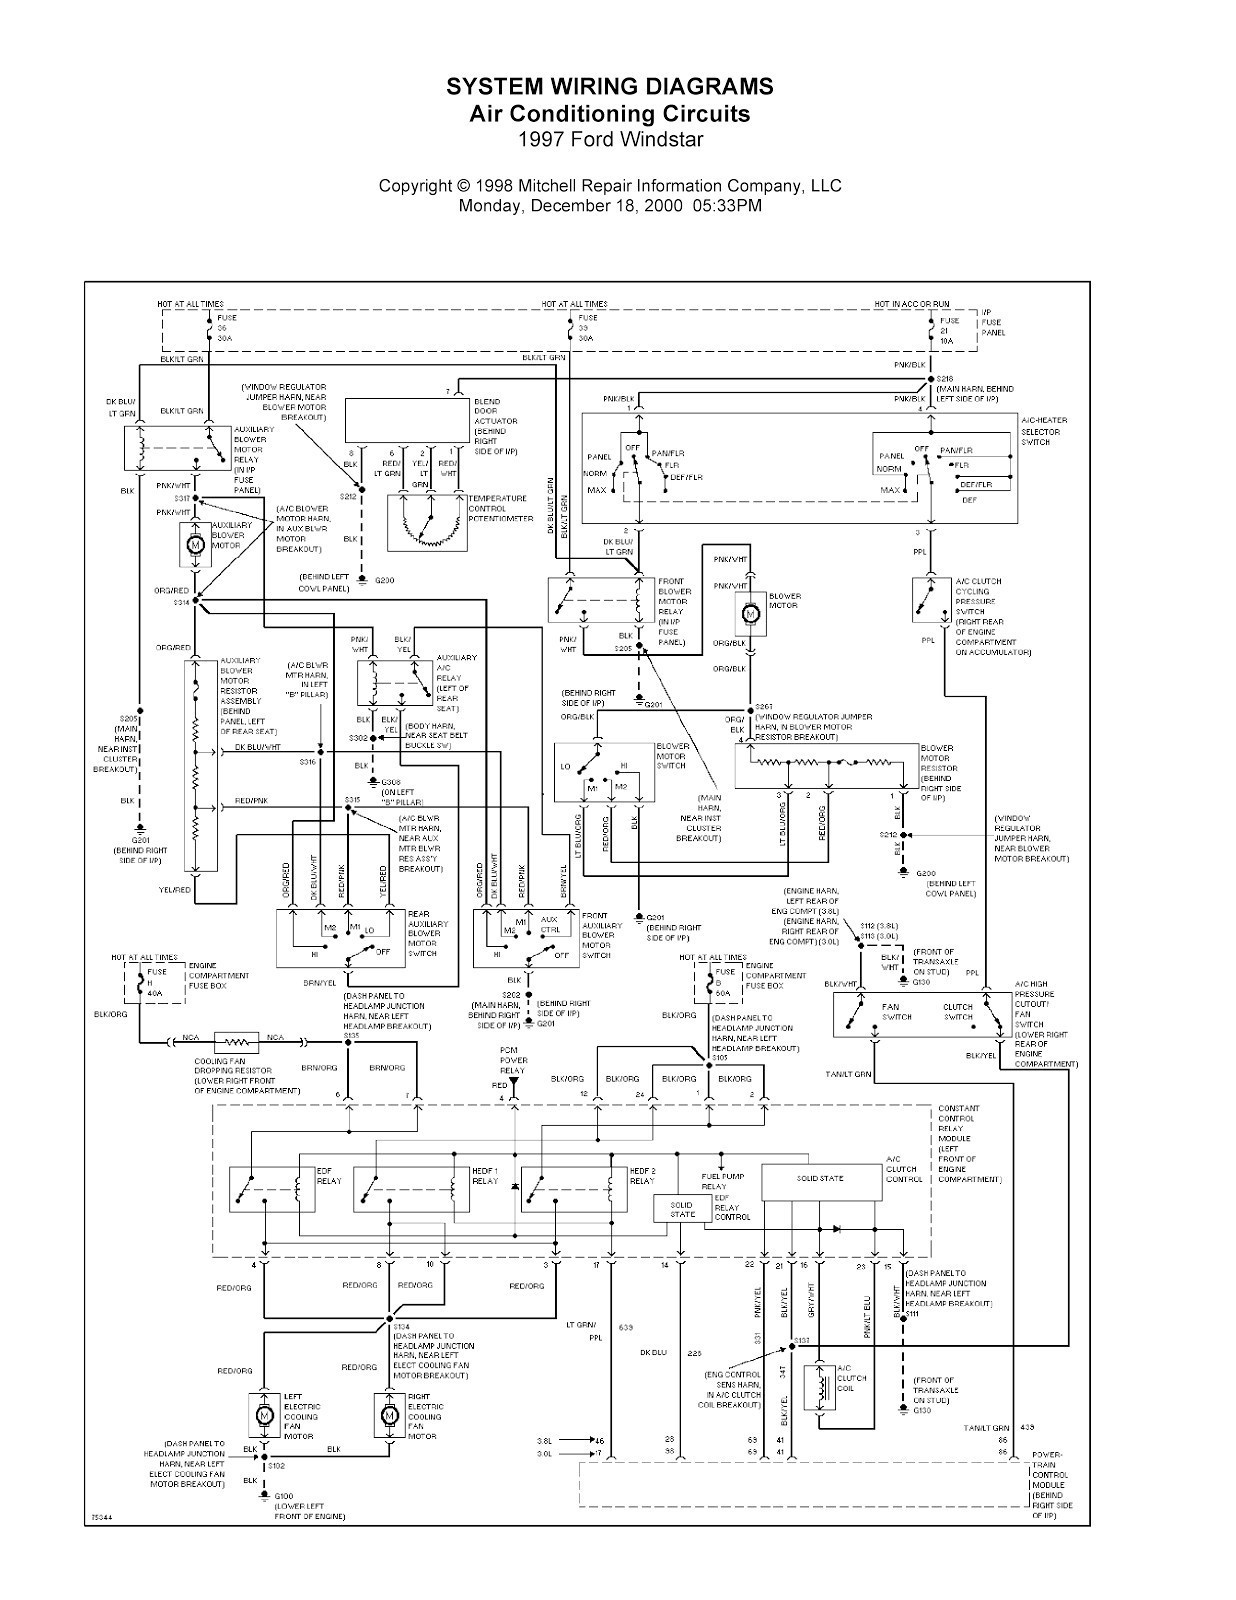 2003 ford windstar fuse diagram potentiometer with spst switch wiring 1998 f150 4 2 v6